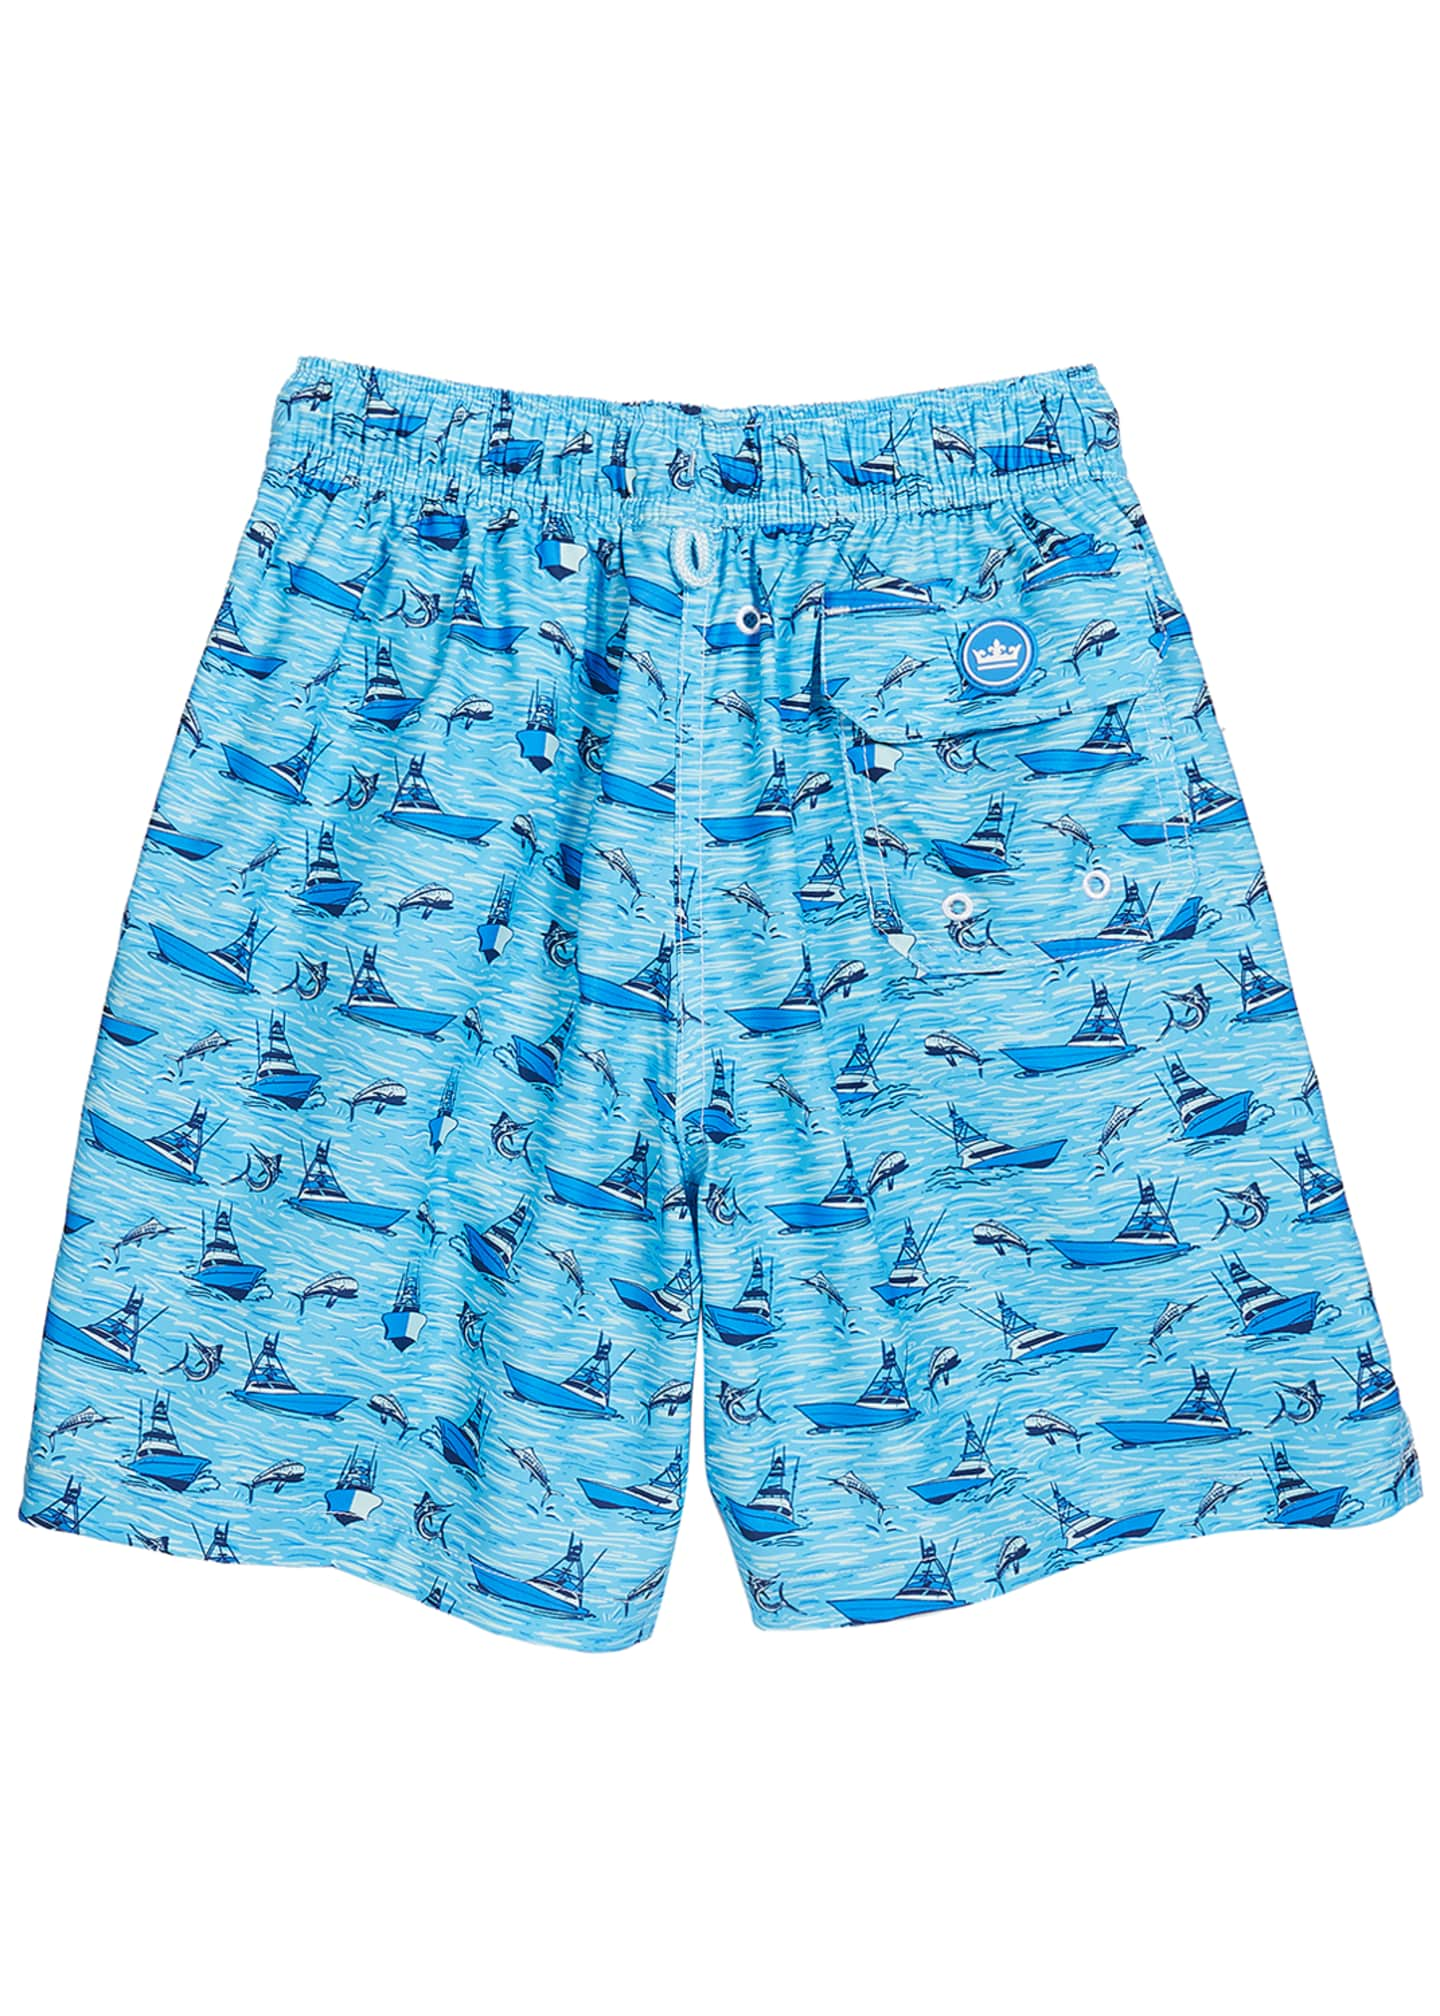 Image 2 of 2: Boy's Gulf Stream Sailboats & Swordfish Print Swim Trunks, Size XXS-XL